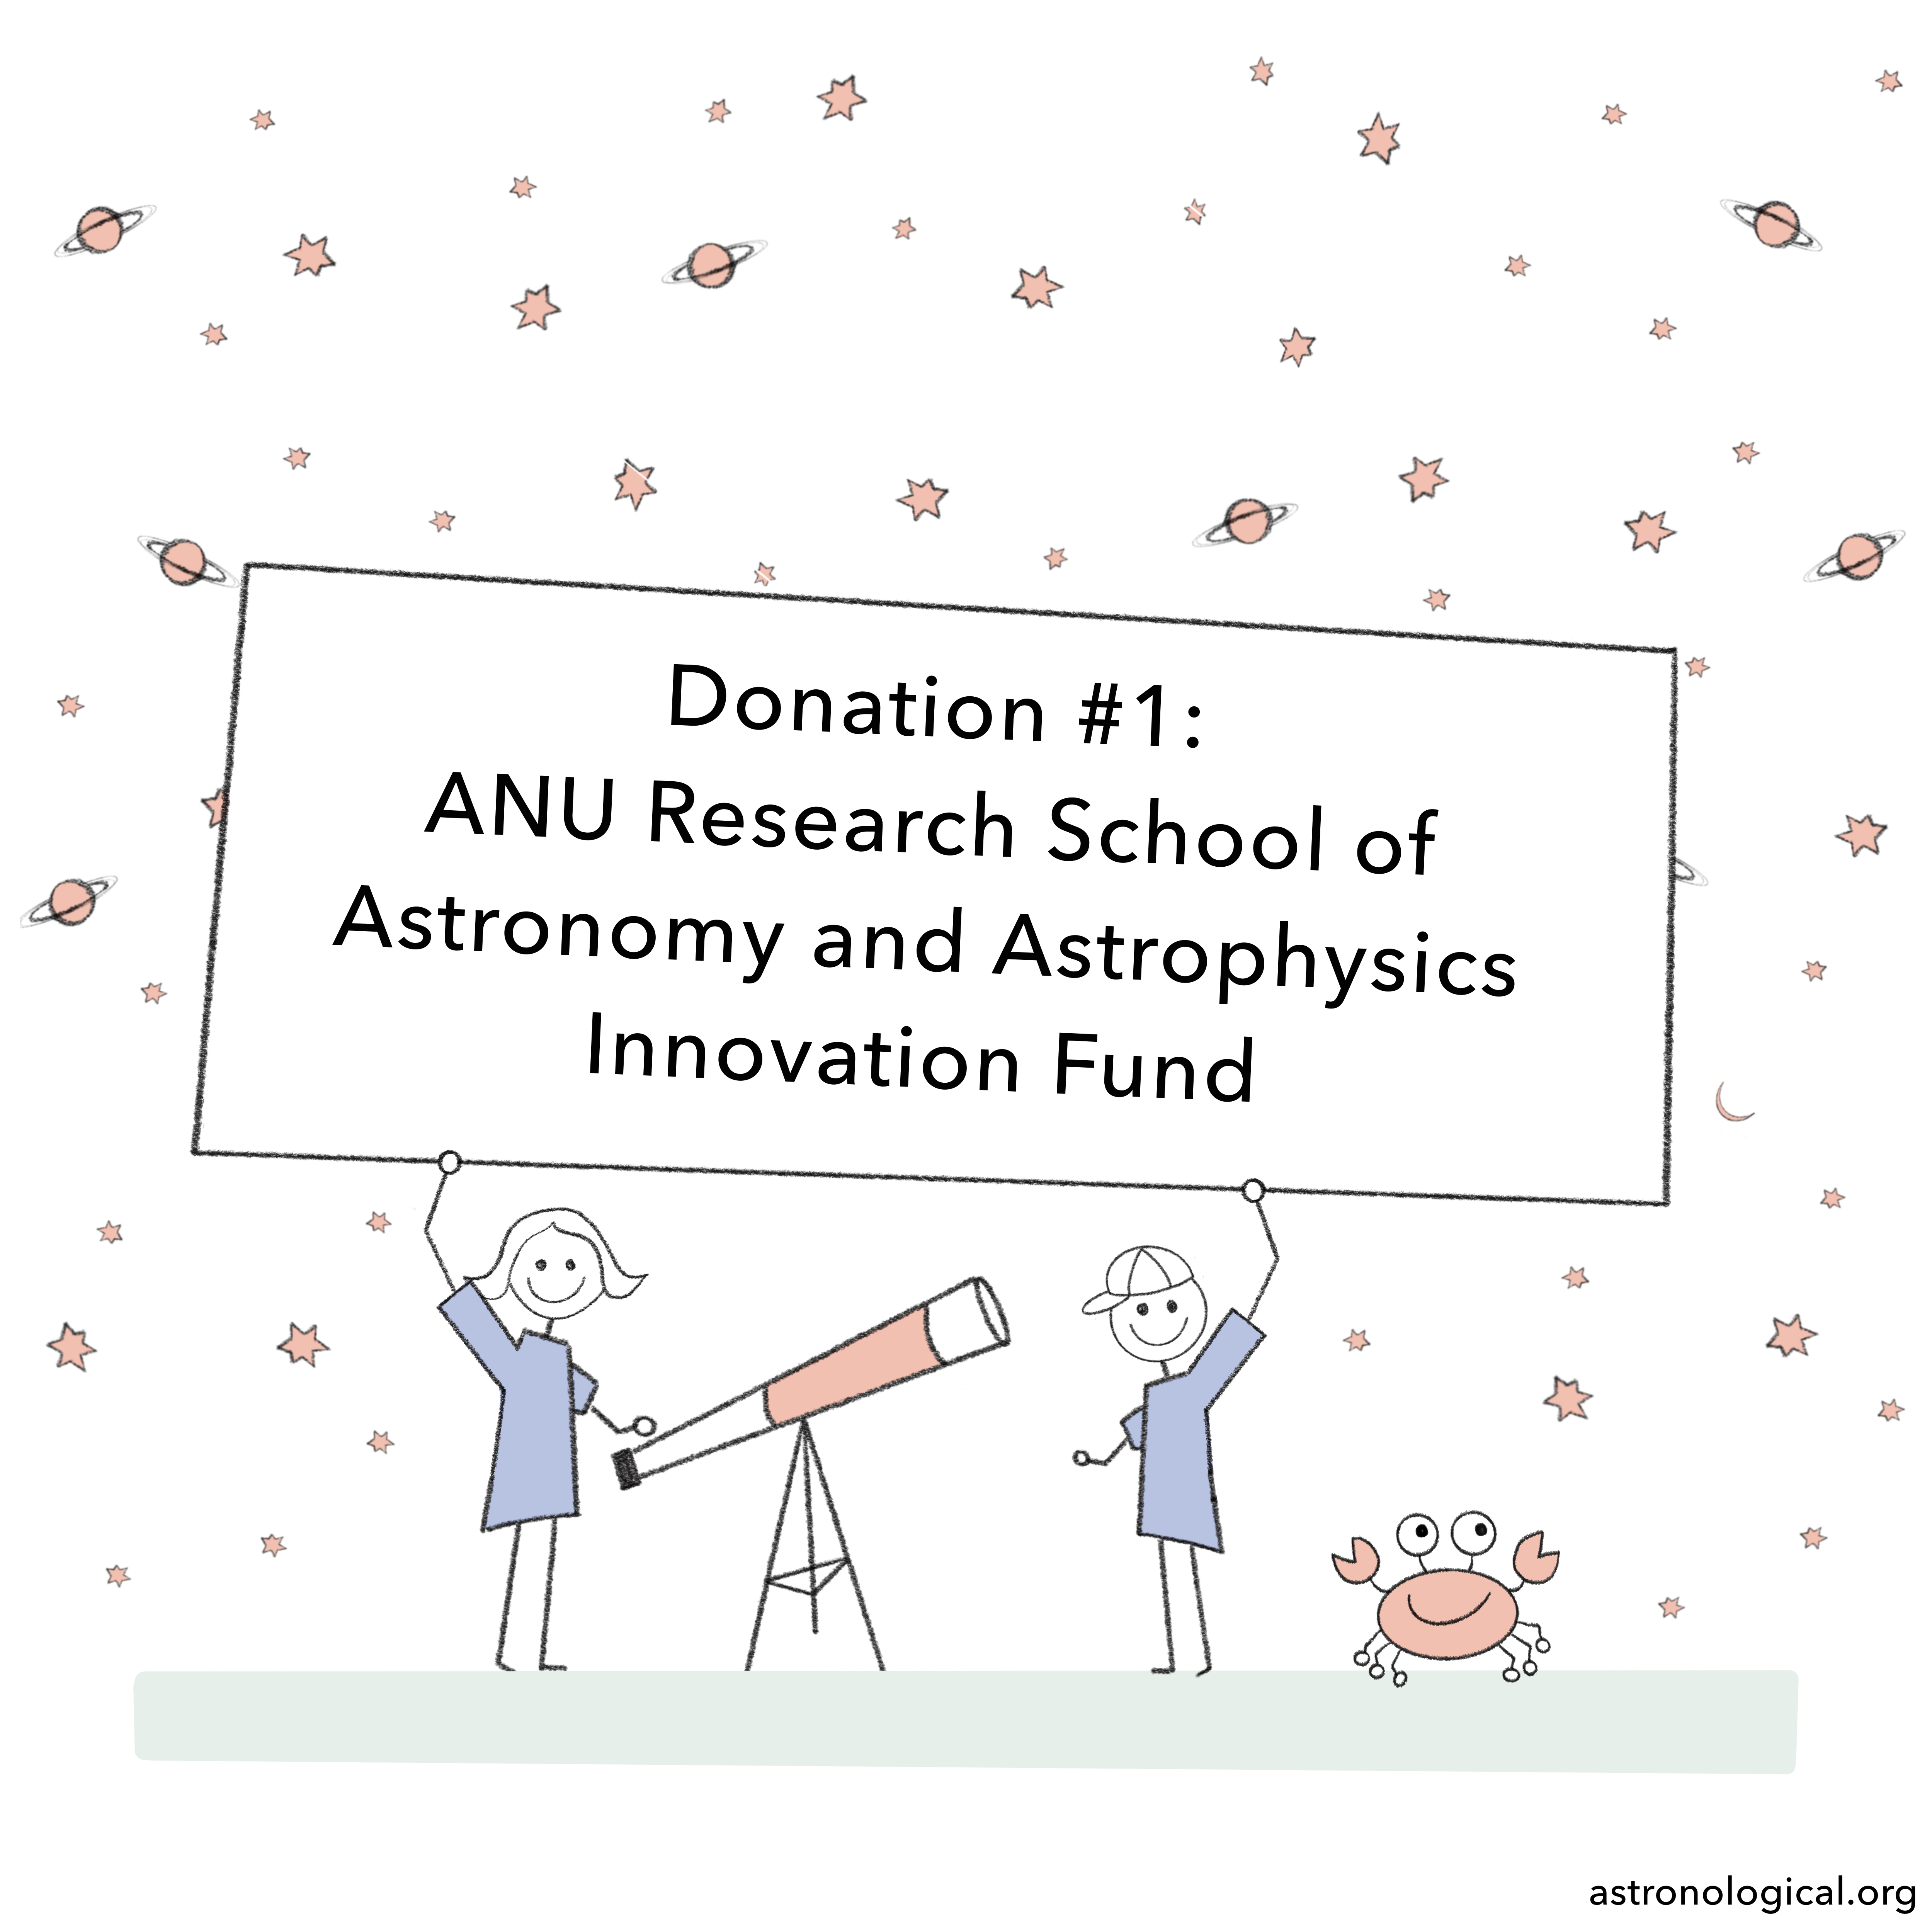 Donation #1: ANU Research School of Astronomy and Astrophysics Innovation Fund